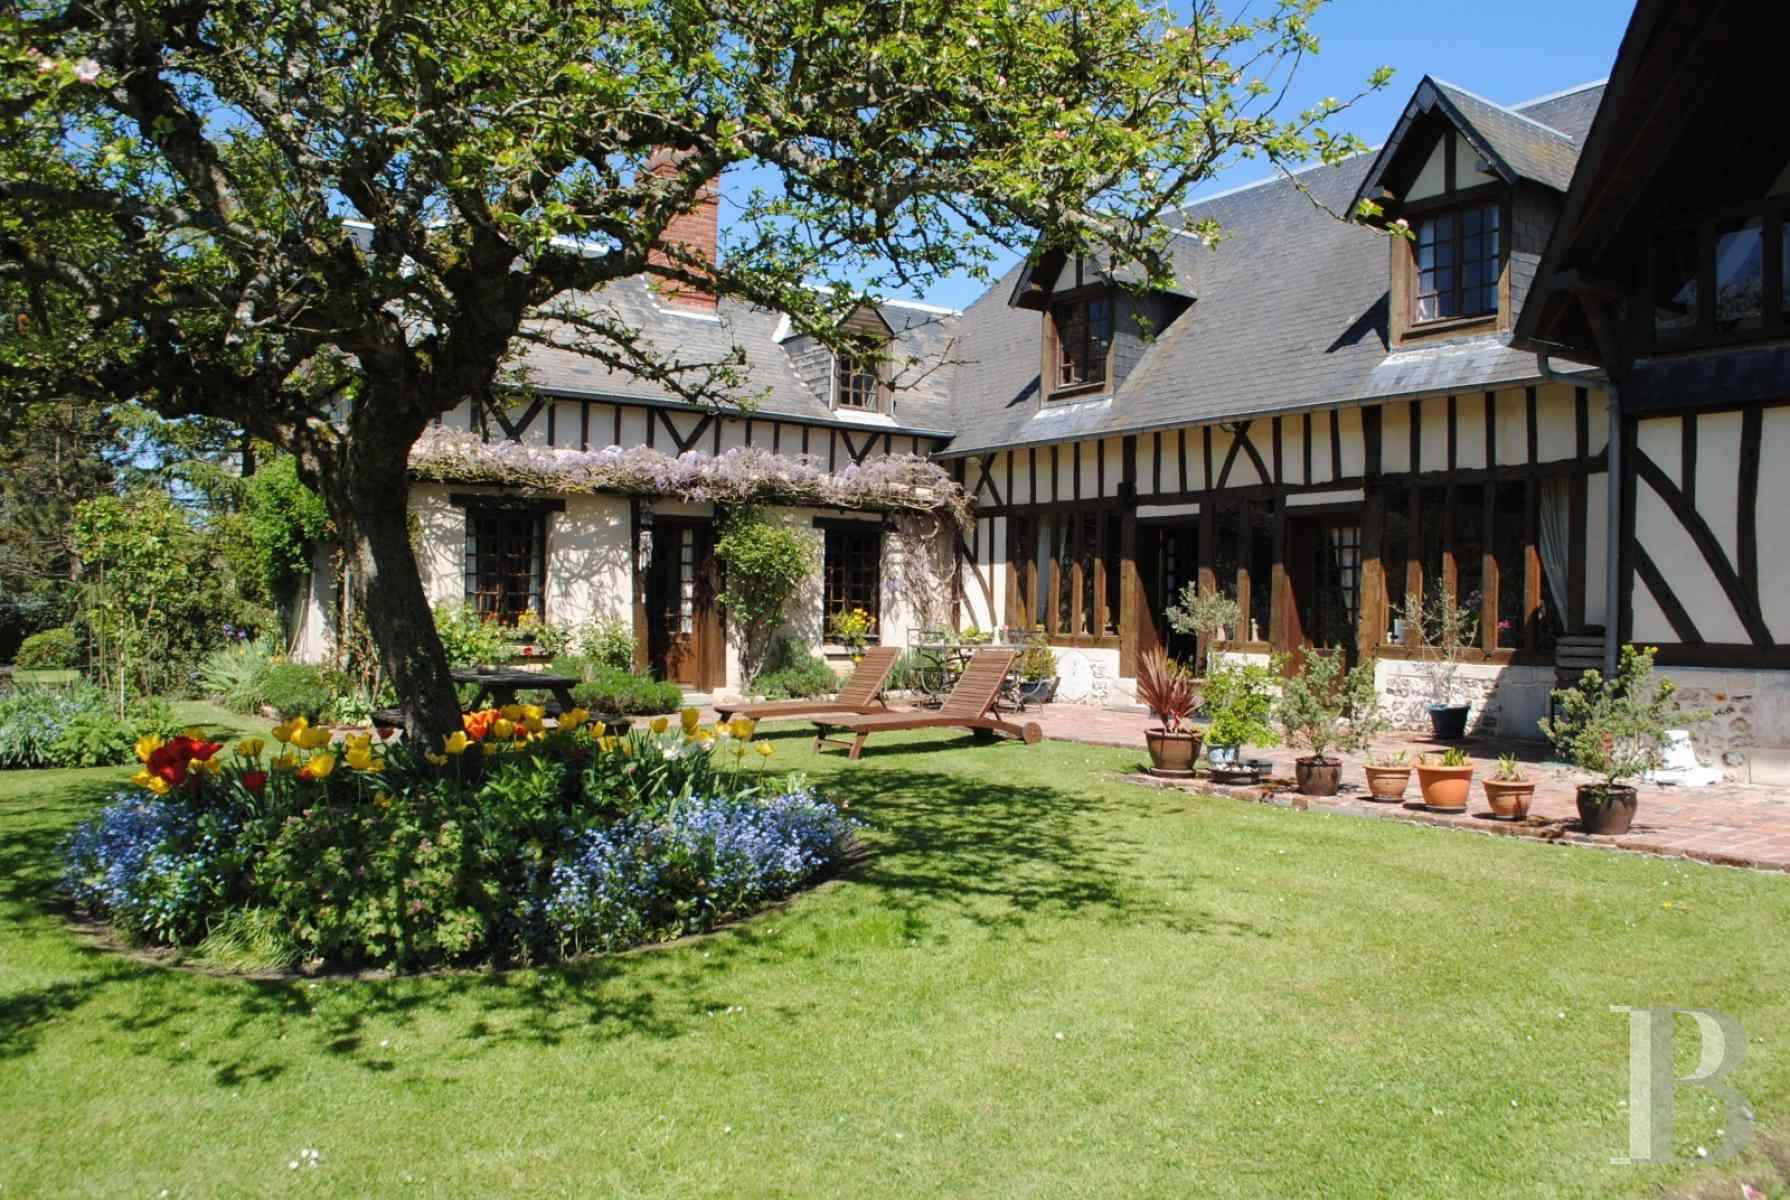 property for sale France upper normandy listed village - 1 zoom